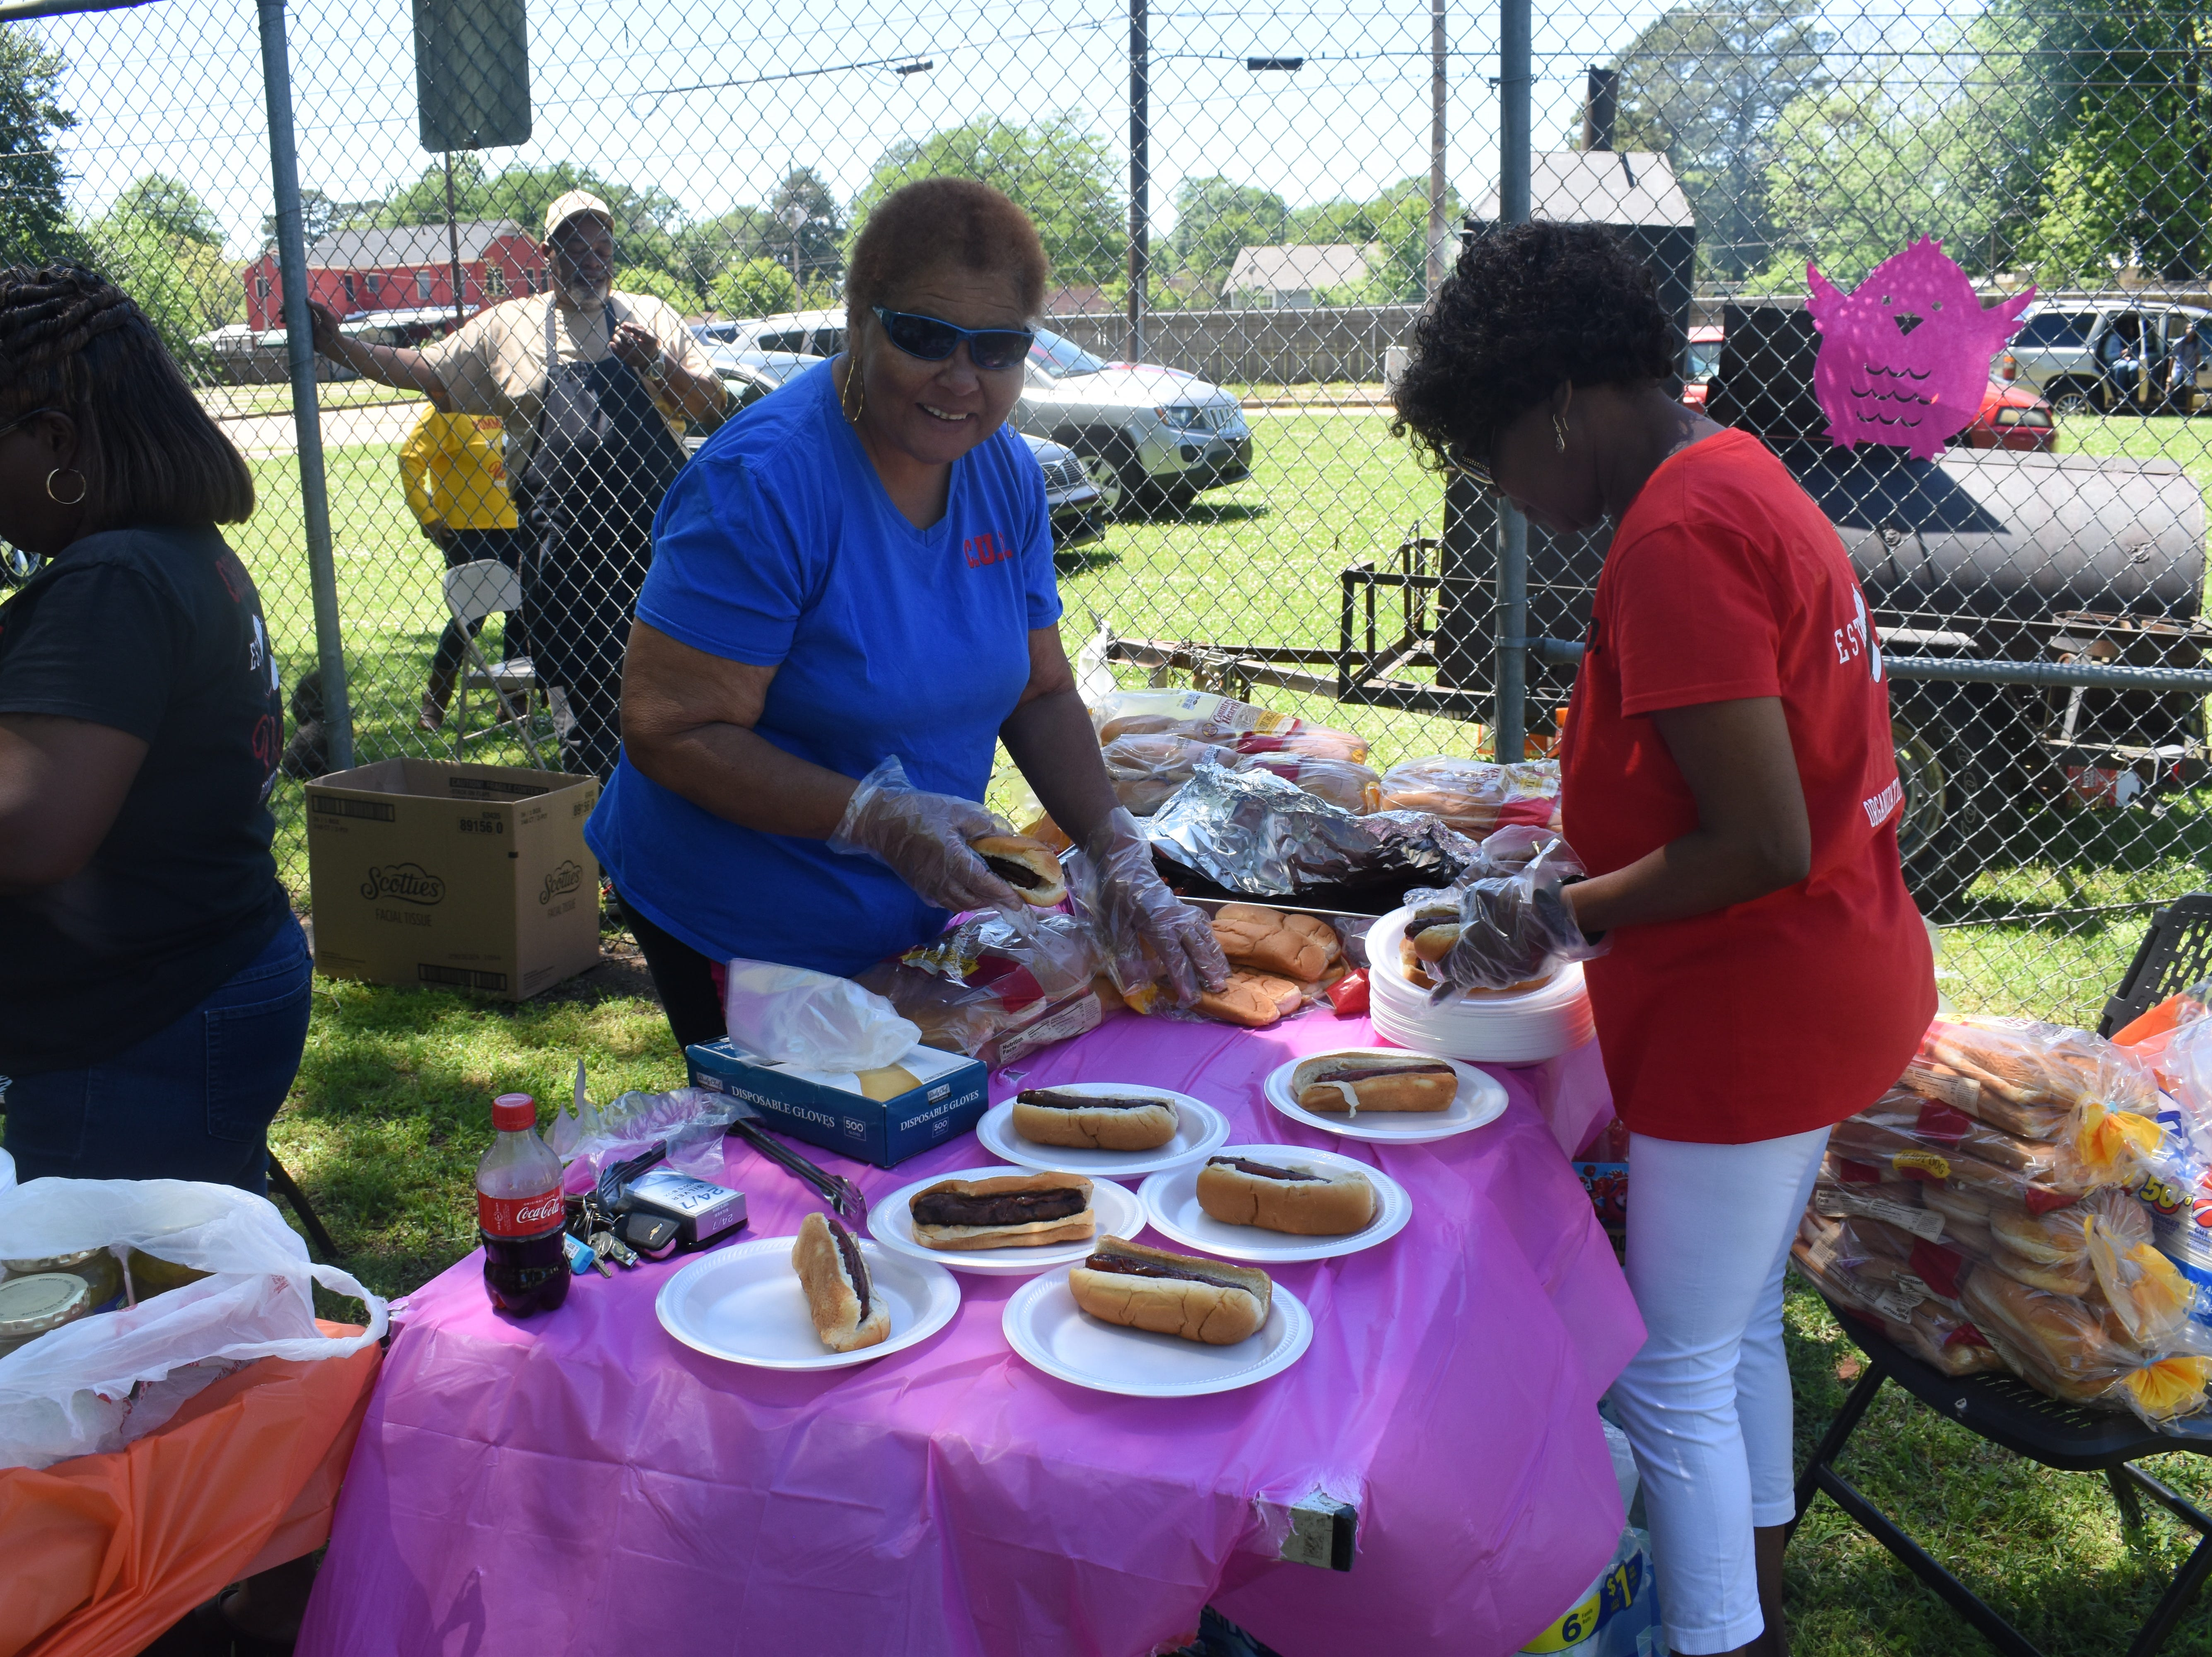 The Community Unity Organization and the Community Revival Organization, which is made up of Philadelphia Baptist Church, Mt. Zion Missionary Baptist Church, First St. Mark Baptist Church and Greater Third Evergreen Baptist Church, held an Easter egg hunt and luncheon at Helen Black Park Saturday, April 20, 2019. The Rev. Roger L. Green, pastor of Mt. Zion, said this was the first event the organizations hosted for the people in the community to come together and for the children to enjoy an Easter egg hunt.